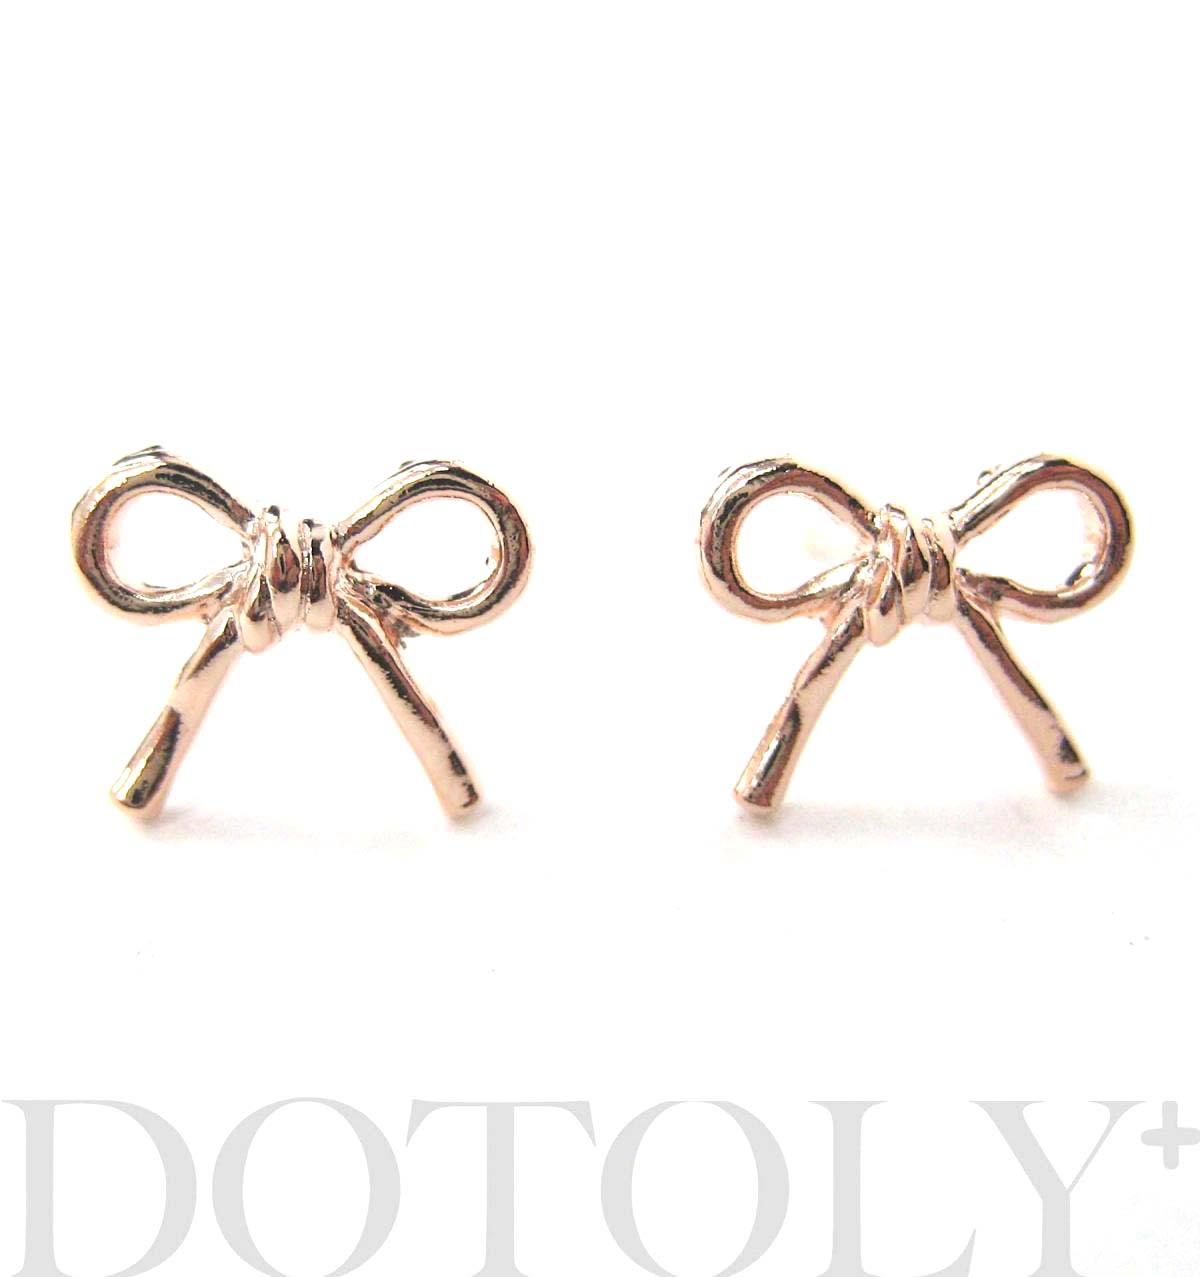 Simple Bow Tie Ribbon Knot Shaped Stud Earrings In Light Gold